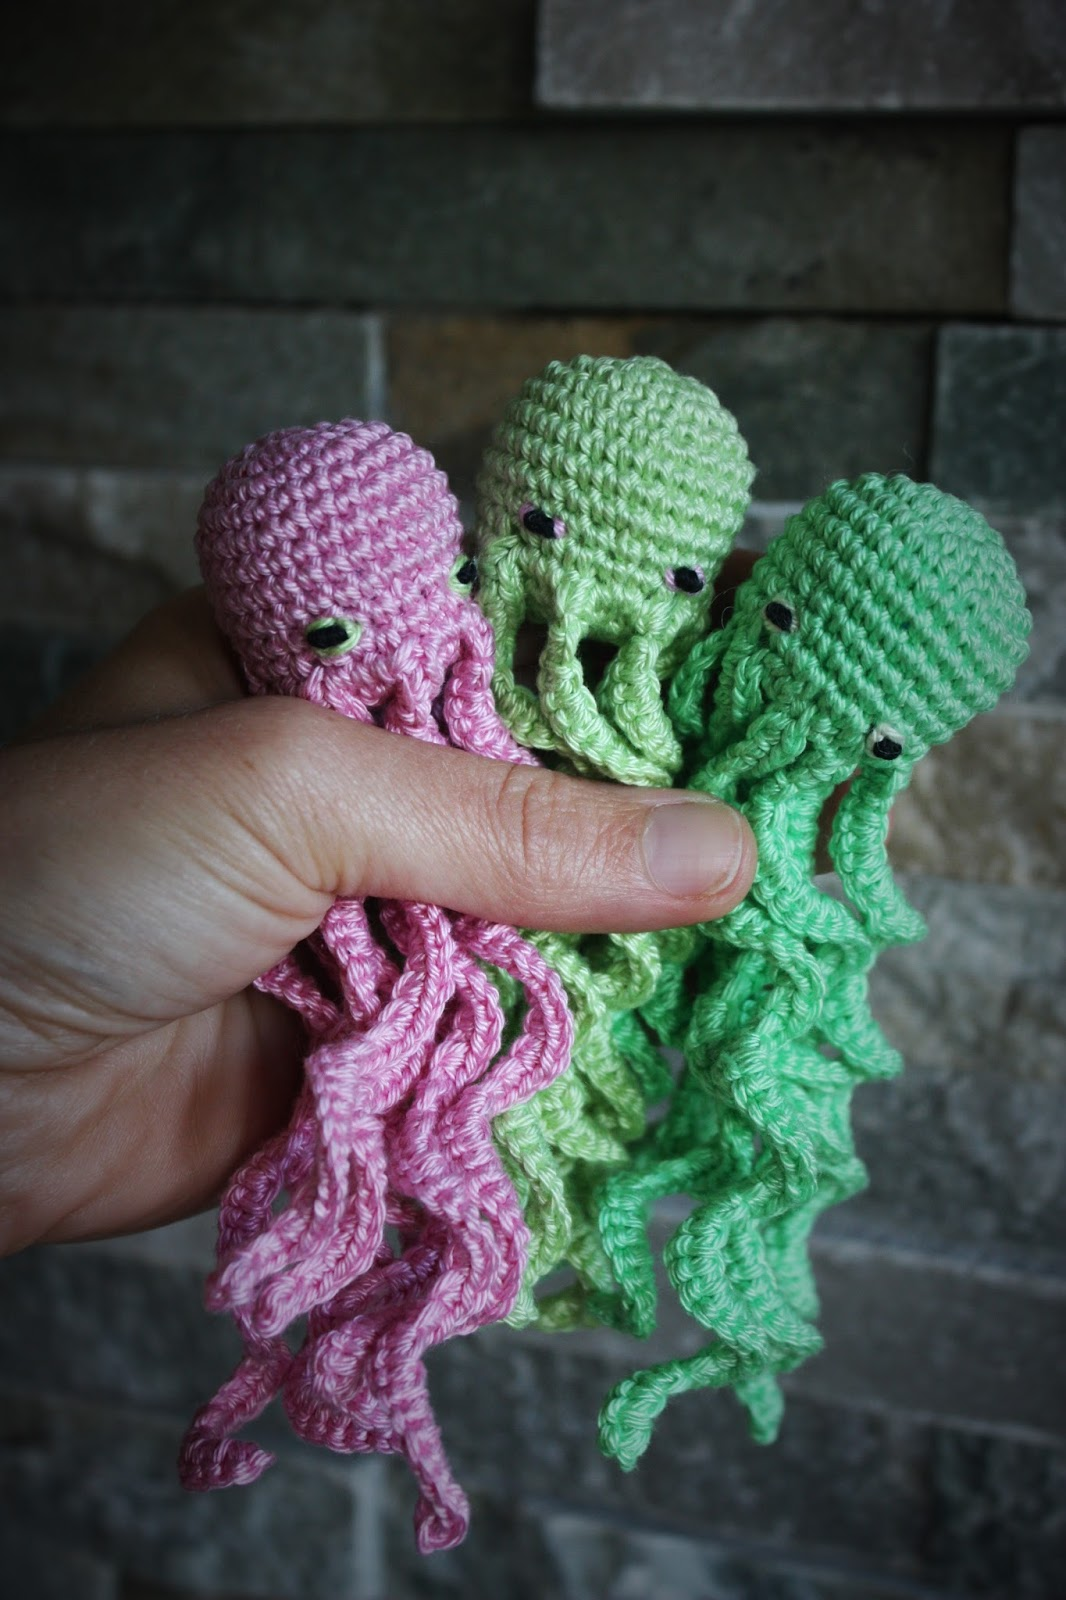 Happyamigurumi amigurumi free seamless octopus pattern diy happyamigurumi amigurumi free seamless octopus pattern diy crochet tutorial octopus in one piece step by step bankloansurffo Choice Image